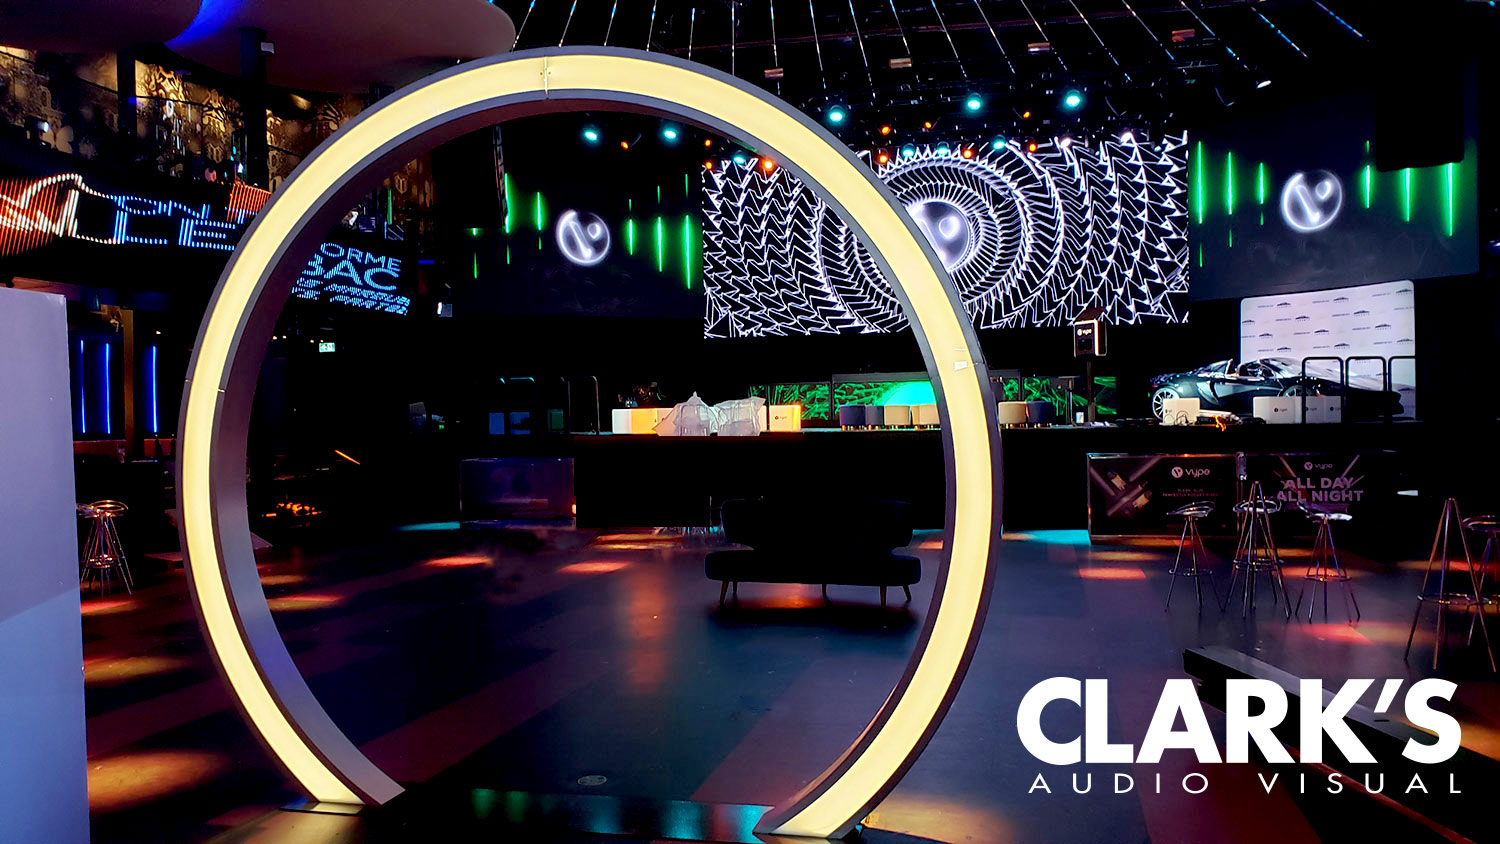 Clark's Audio Visual Services